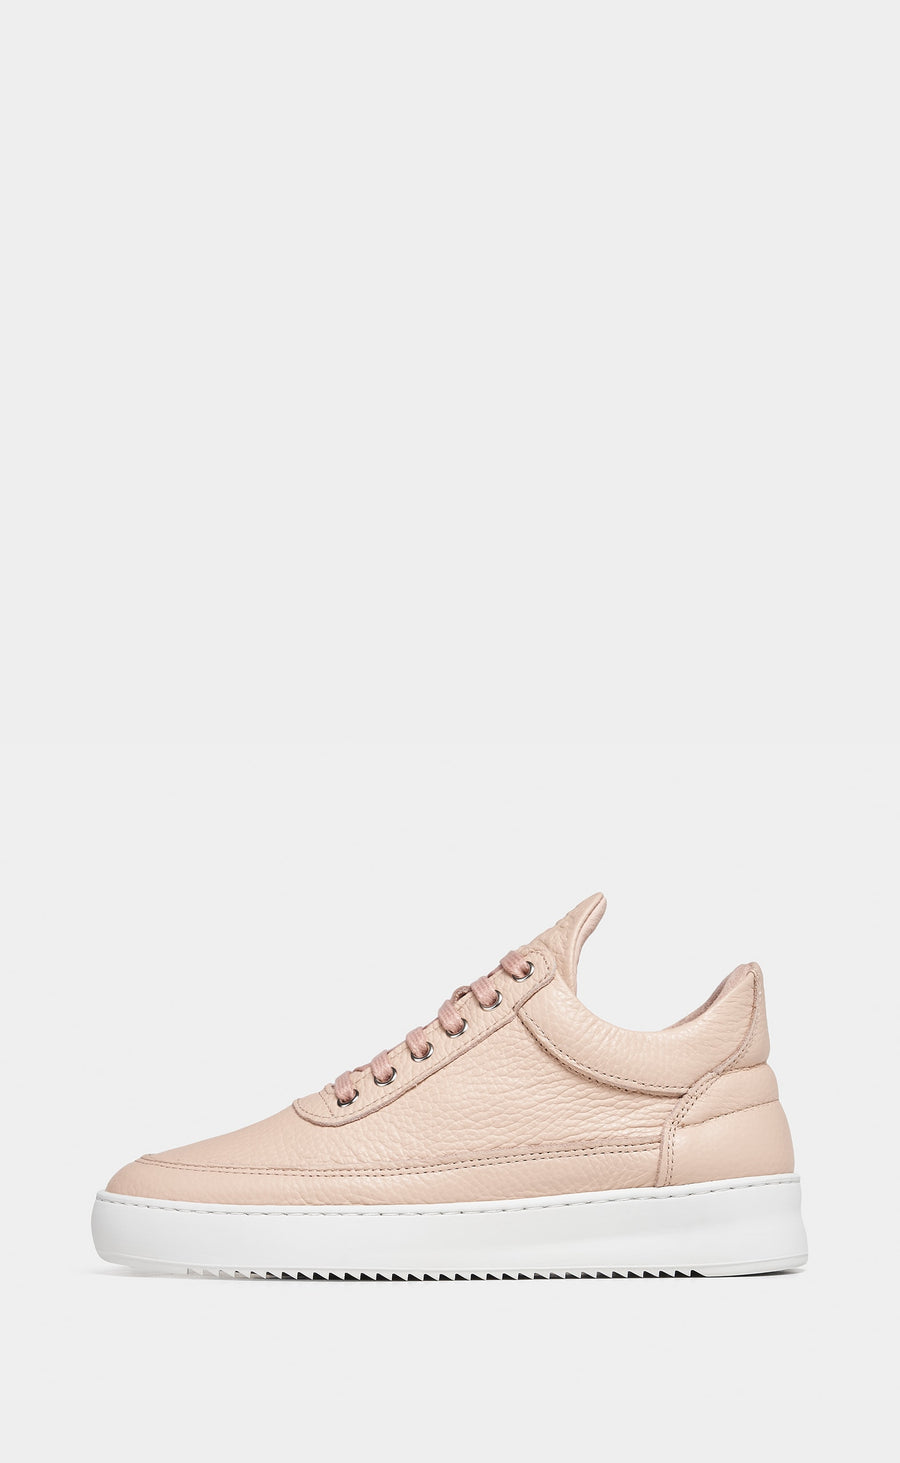 Low Top Ripple Grain Light Pink